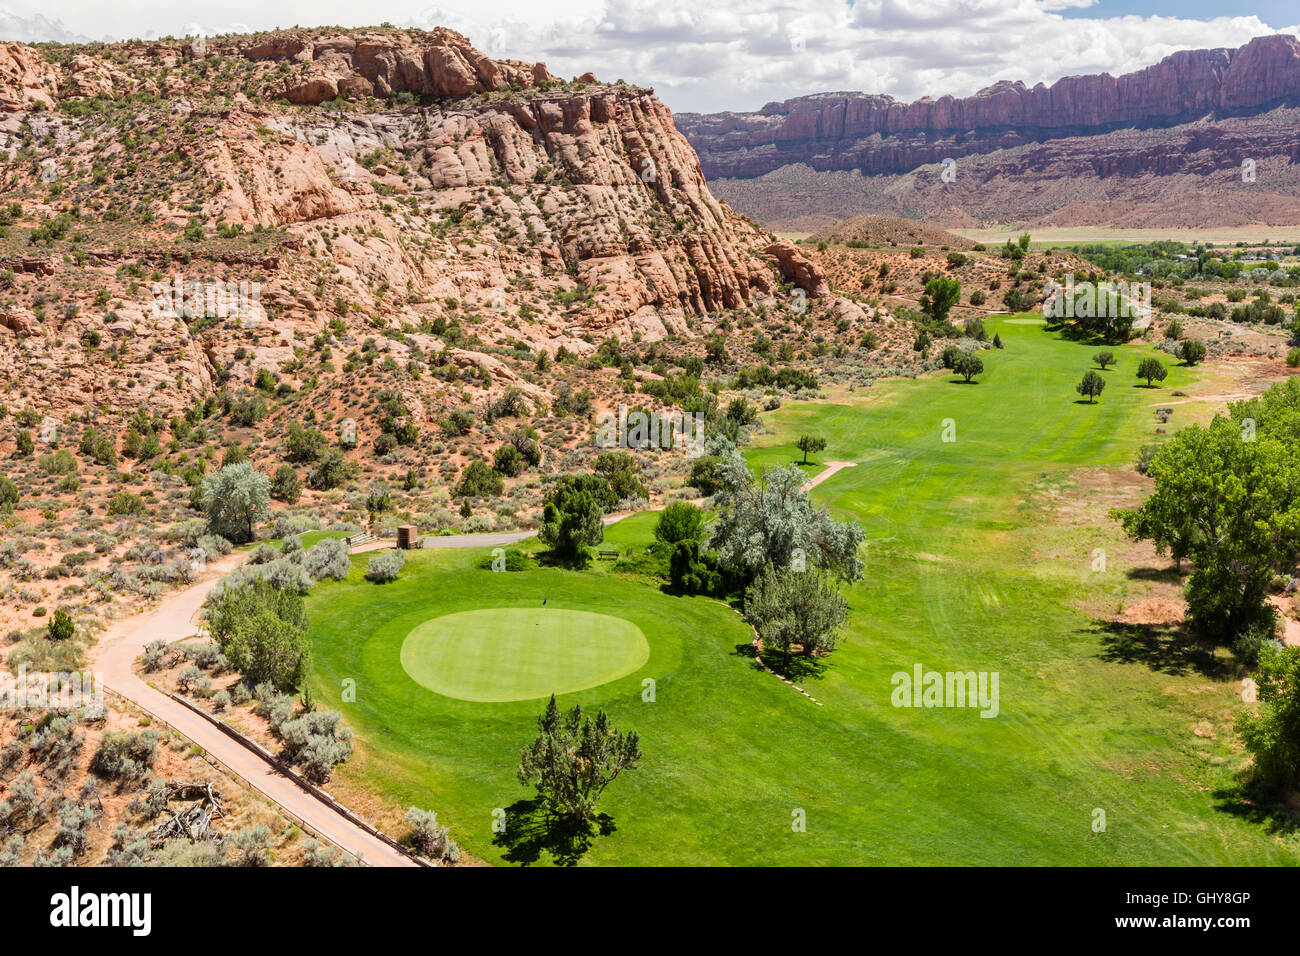 The 4th Green of the Moab Golf Course nestled under a red rock cliff in Moab, Utah. - Stock Image